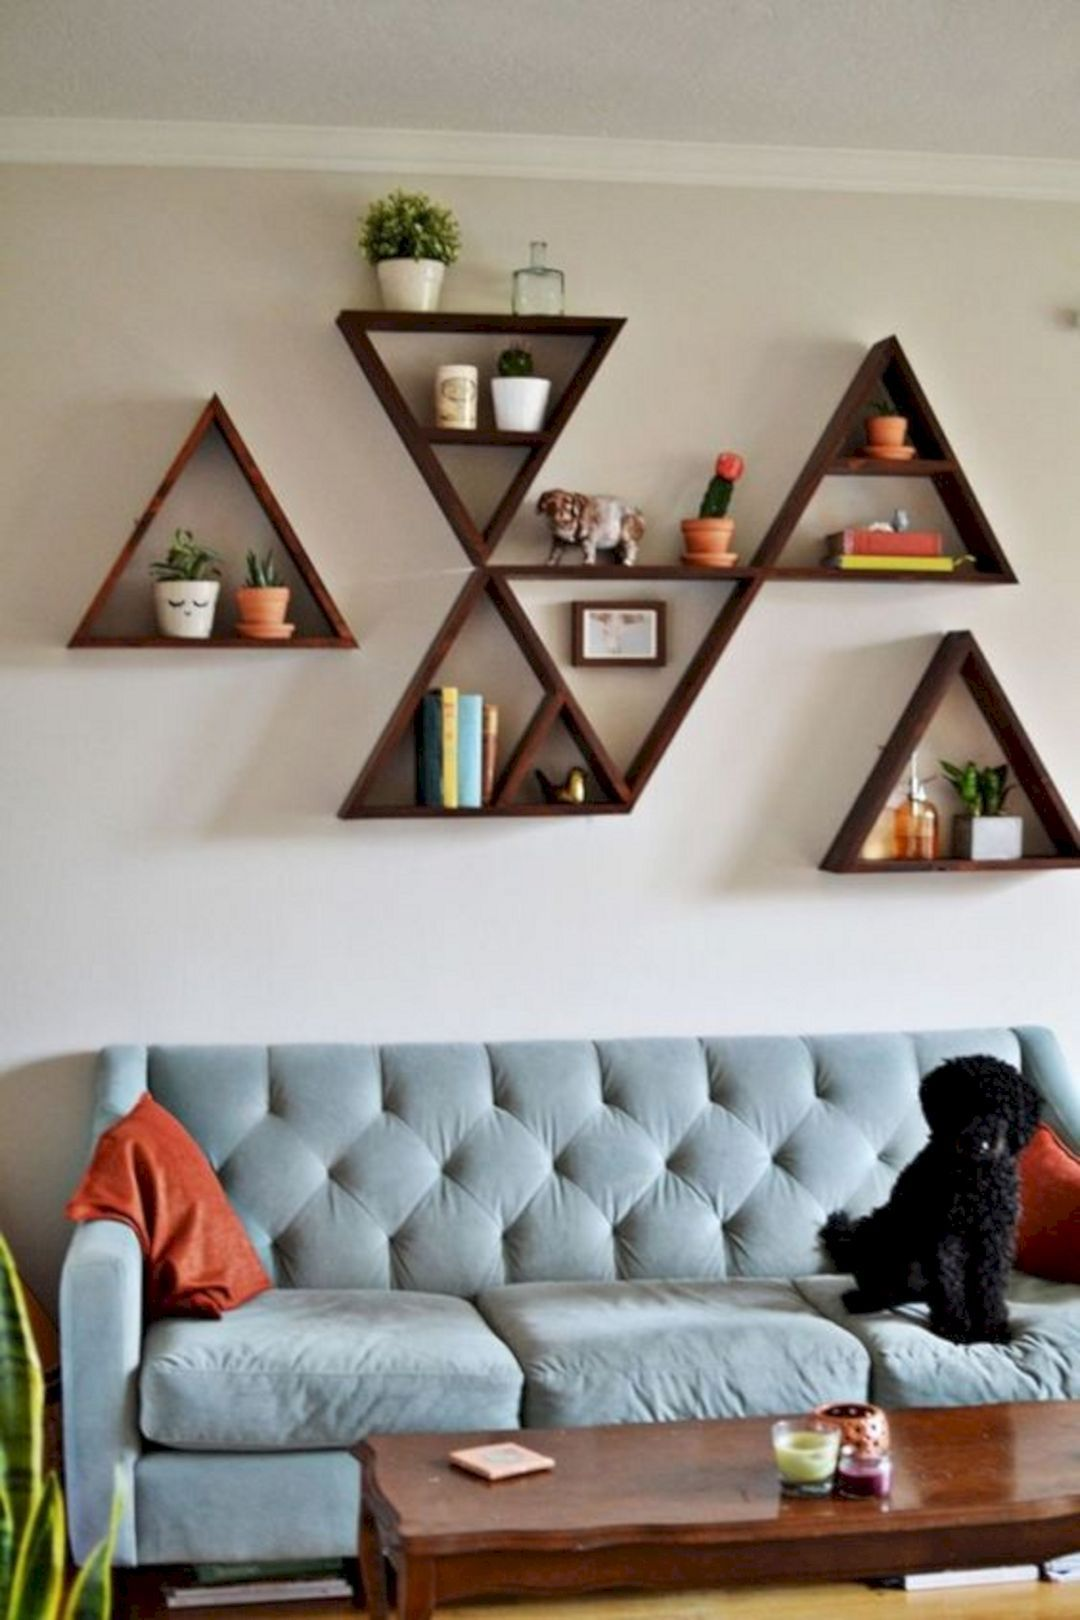 25 Creative Wall Shelves Design Ideas For Lovely Home Decoration